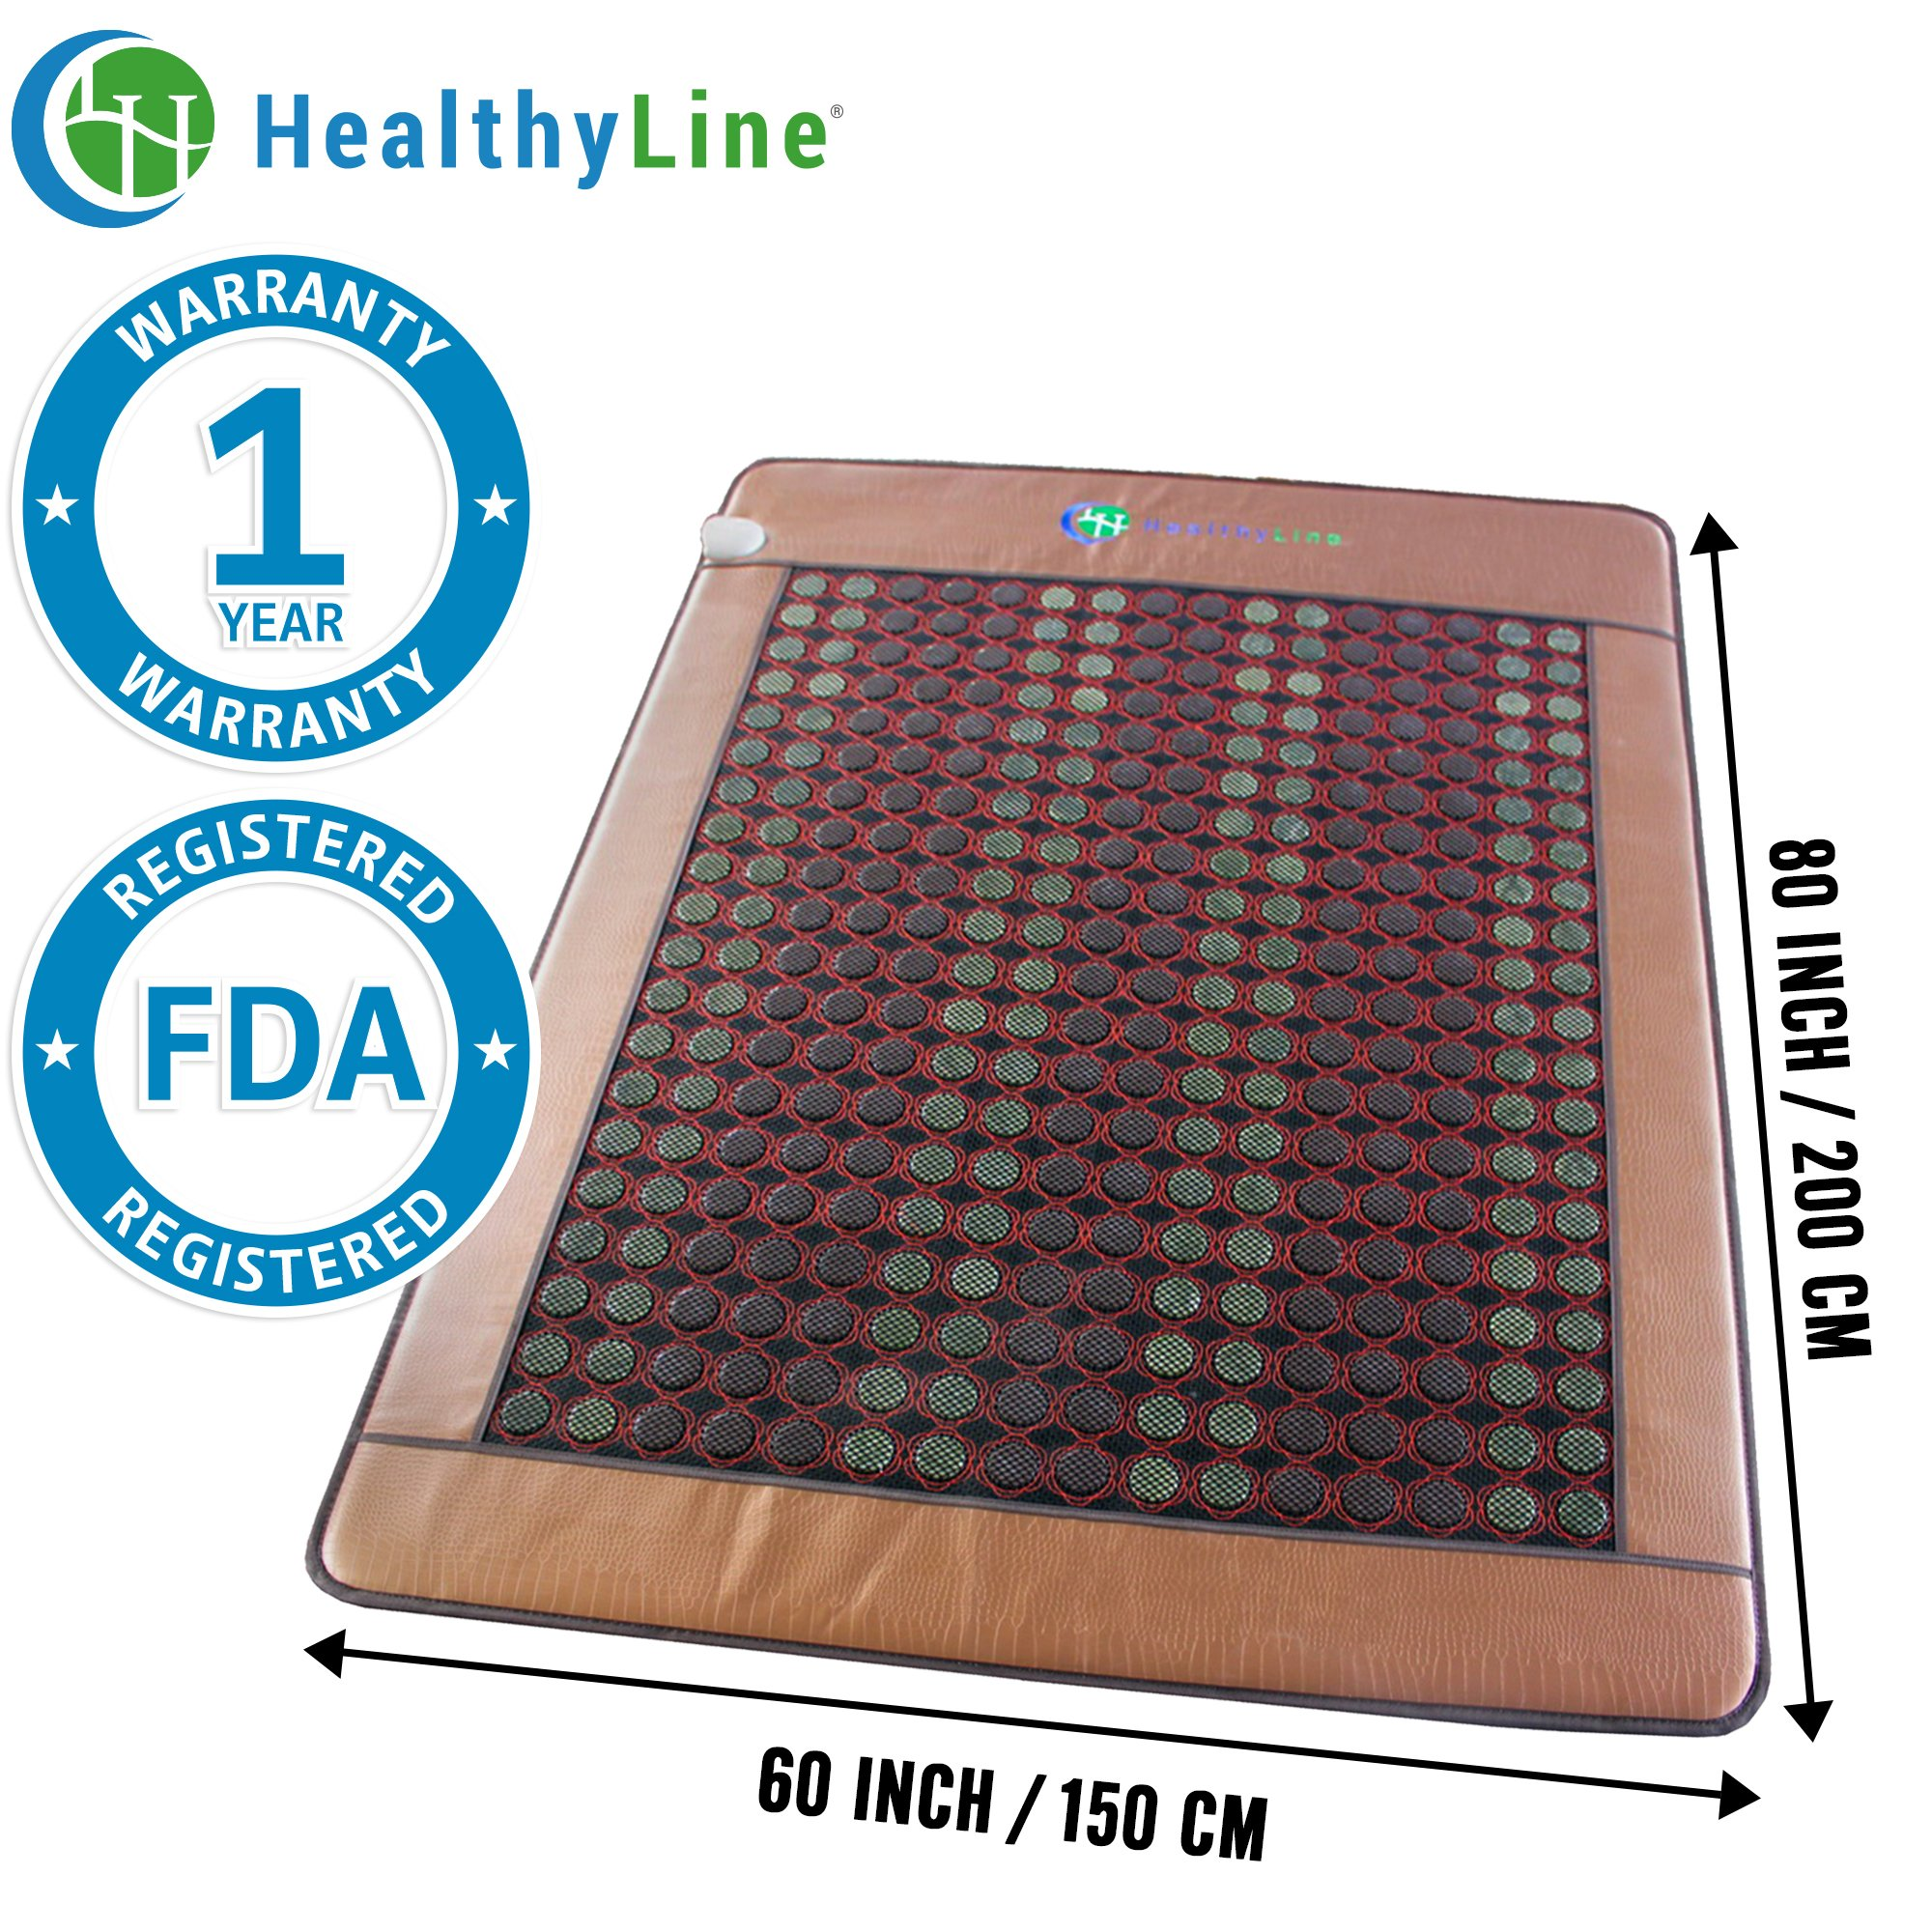 HealthyLine Far Infrared Heating Mat|Natural Jade & Tourmaline Healing Mat 80'' x 60'' |​​​​​ ​Heated Negative Ions (Queen & Firm) | Detox, Relieve Pain, Stress & Insomnia | FDA Registered